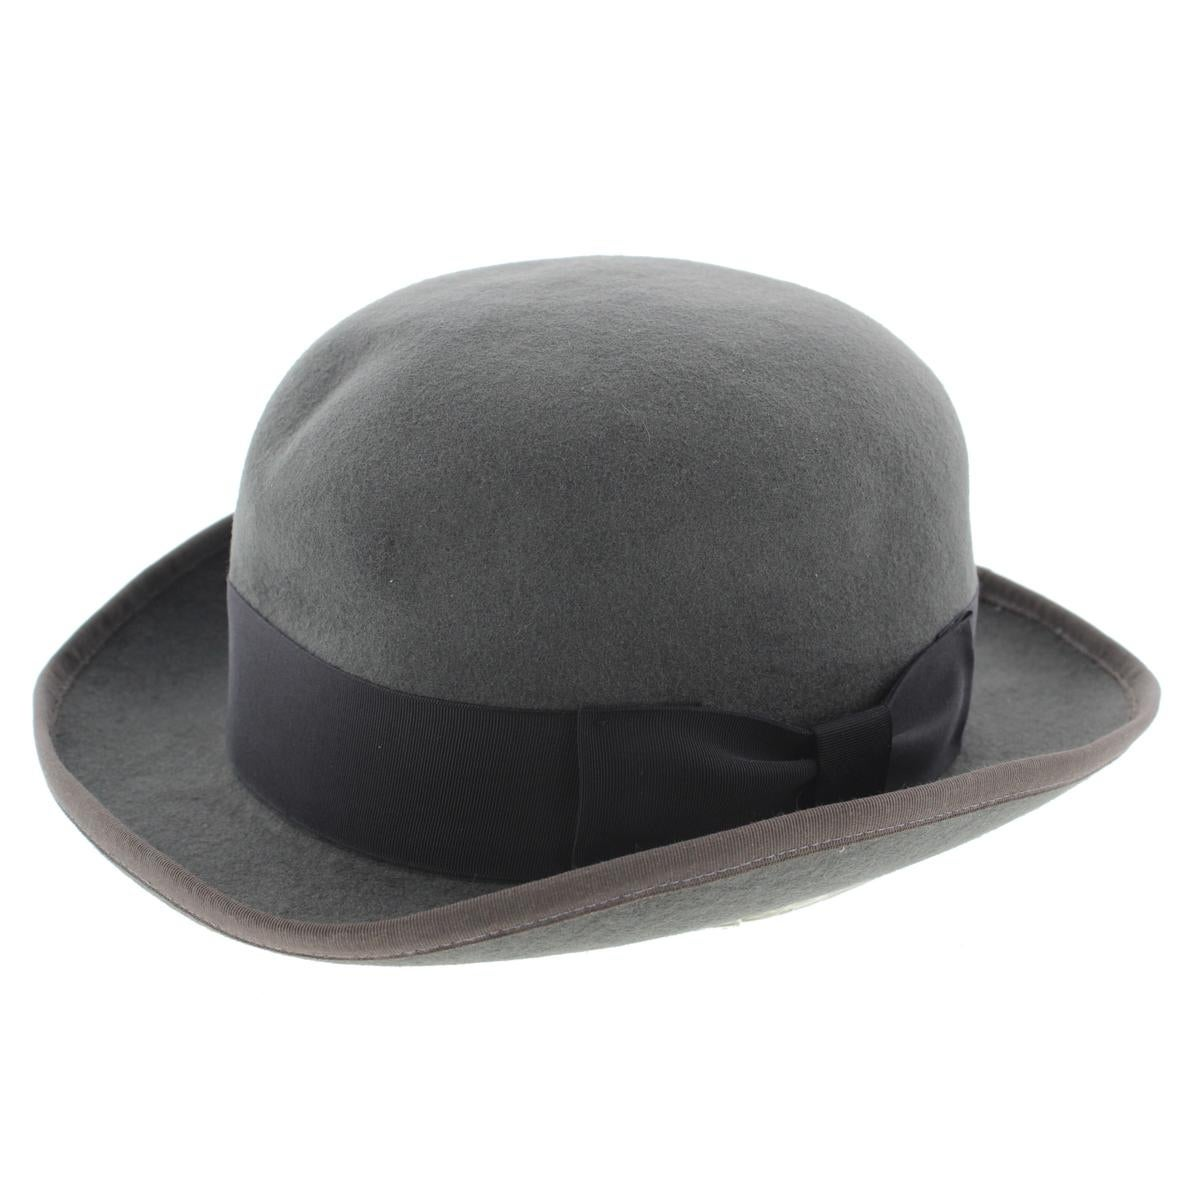 22a349733ba31 Shop Hats in the Belfry Mens Tammany Derby Hat Wool Banded - Ships To  Canada - Overstock - 13125752